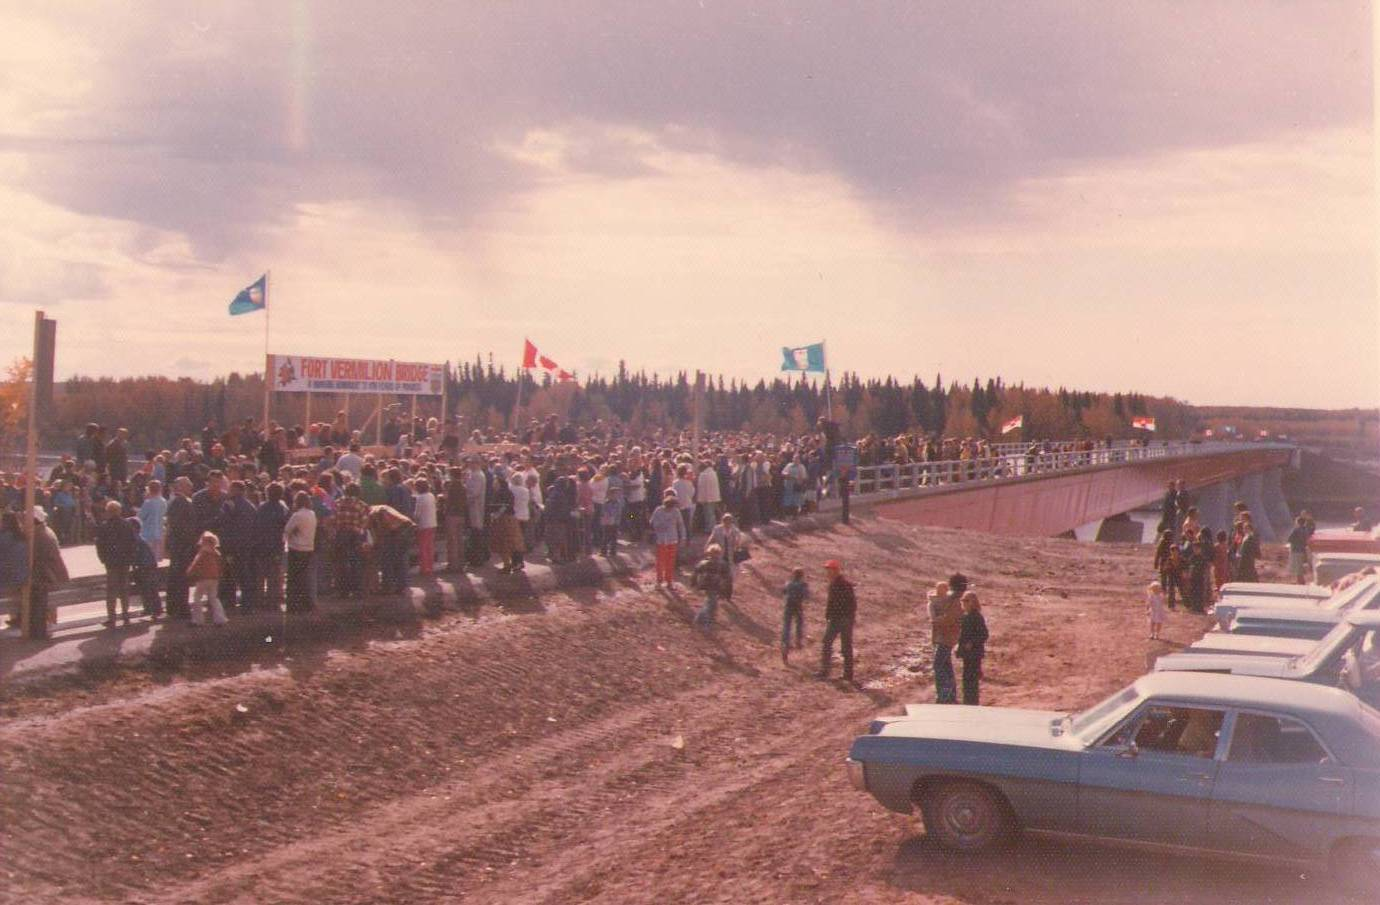 Bridge opening ceremony in 1974. Photo Credit: Pearl Newman